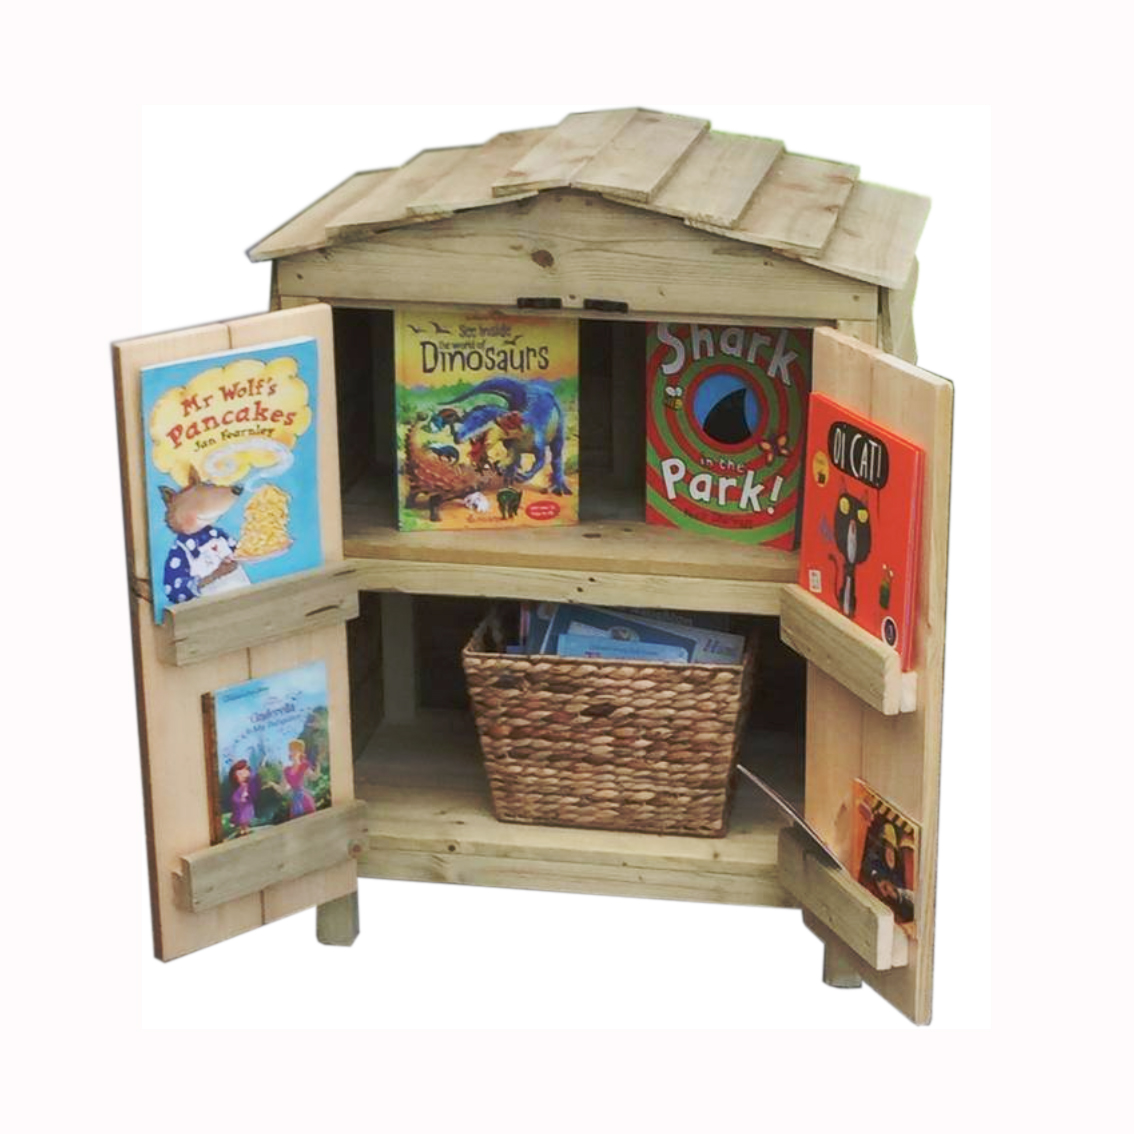 66_beehive_book_Store_22